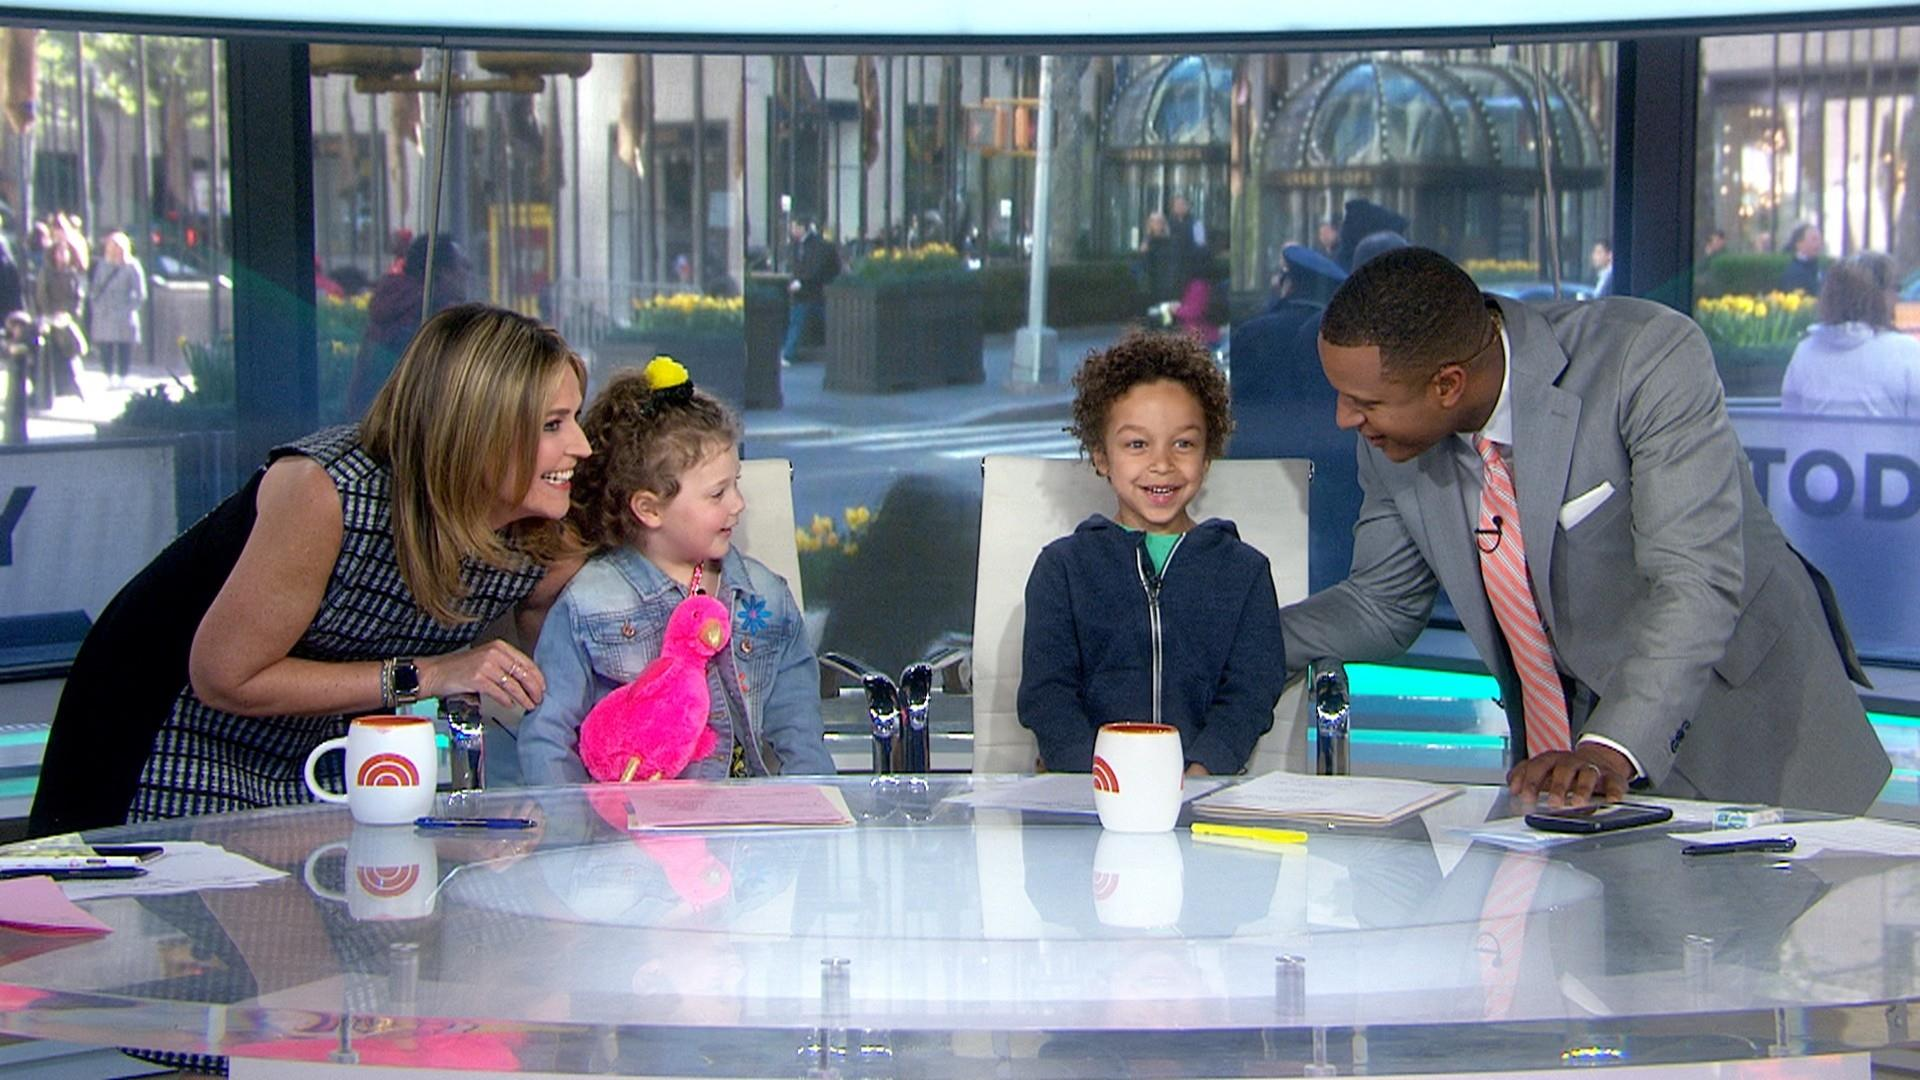 Savannah Guthrie and Craig Melvin's kids fill in at the TODAY desk